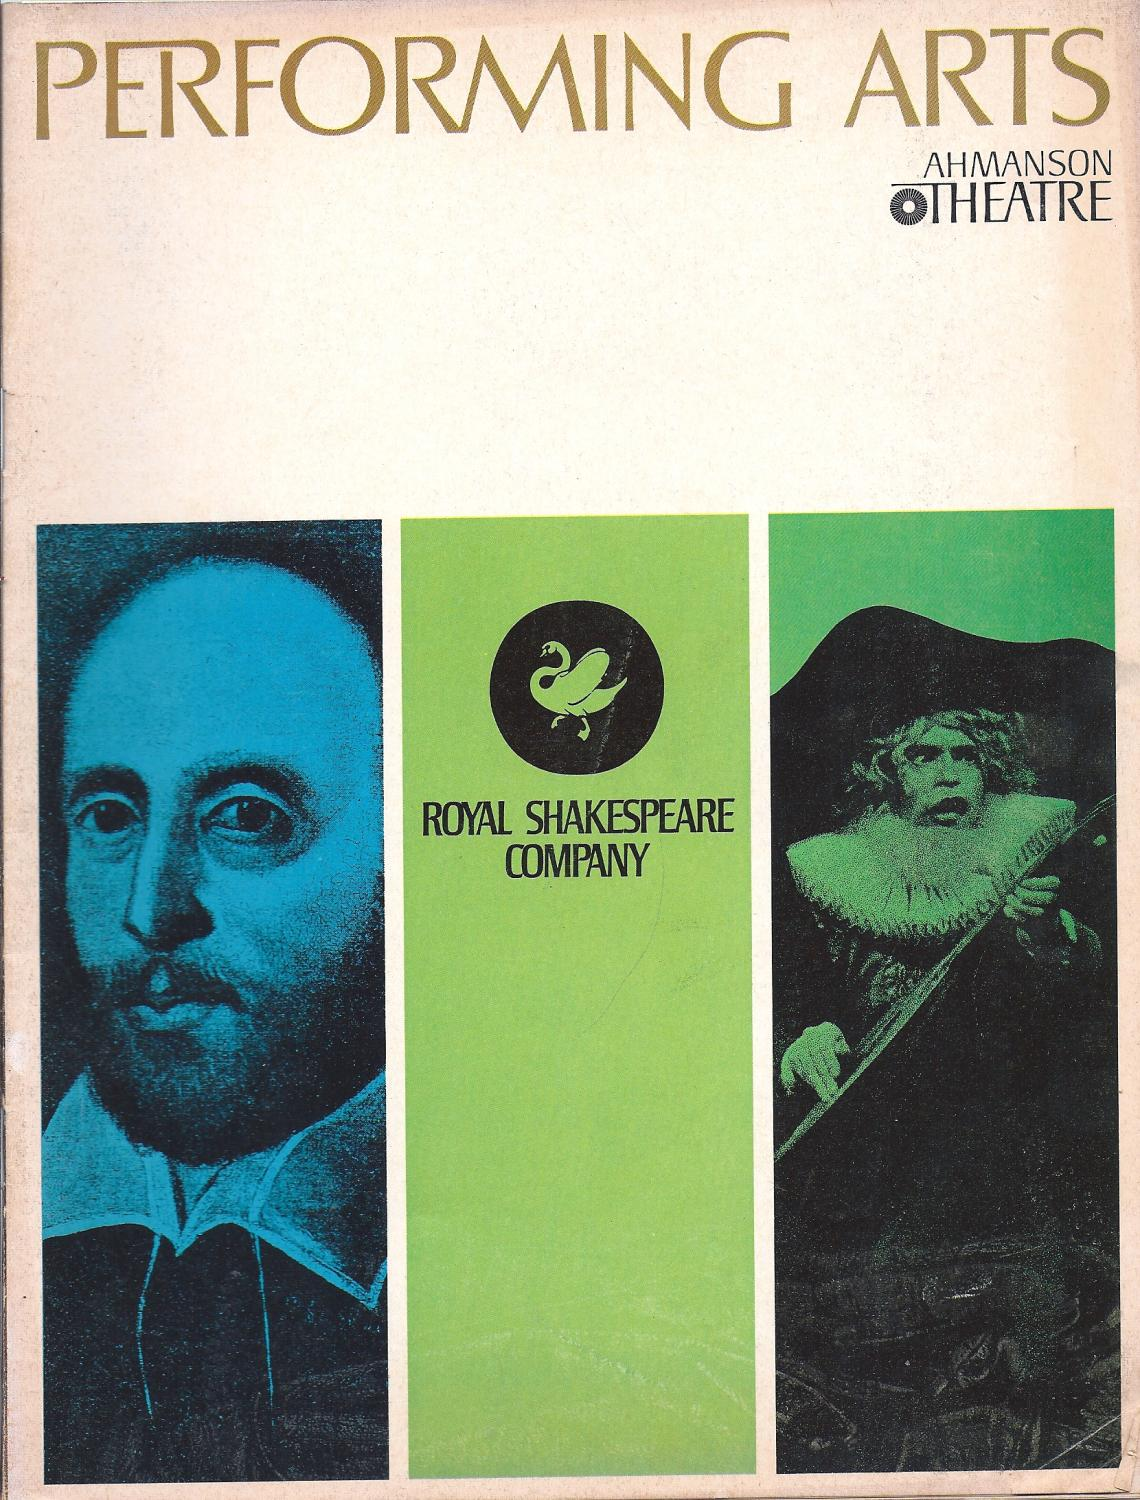 Performing Arts The Music Center Monthly Ahmanson Theatre February 1968 oversize